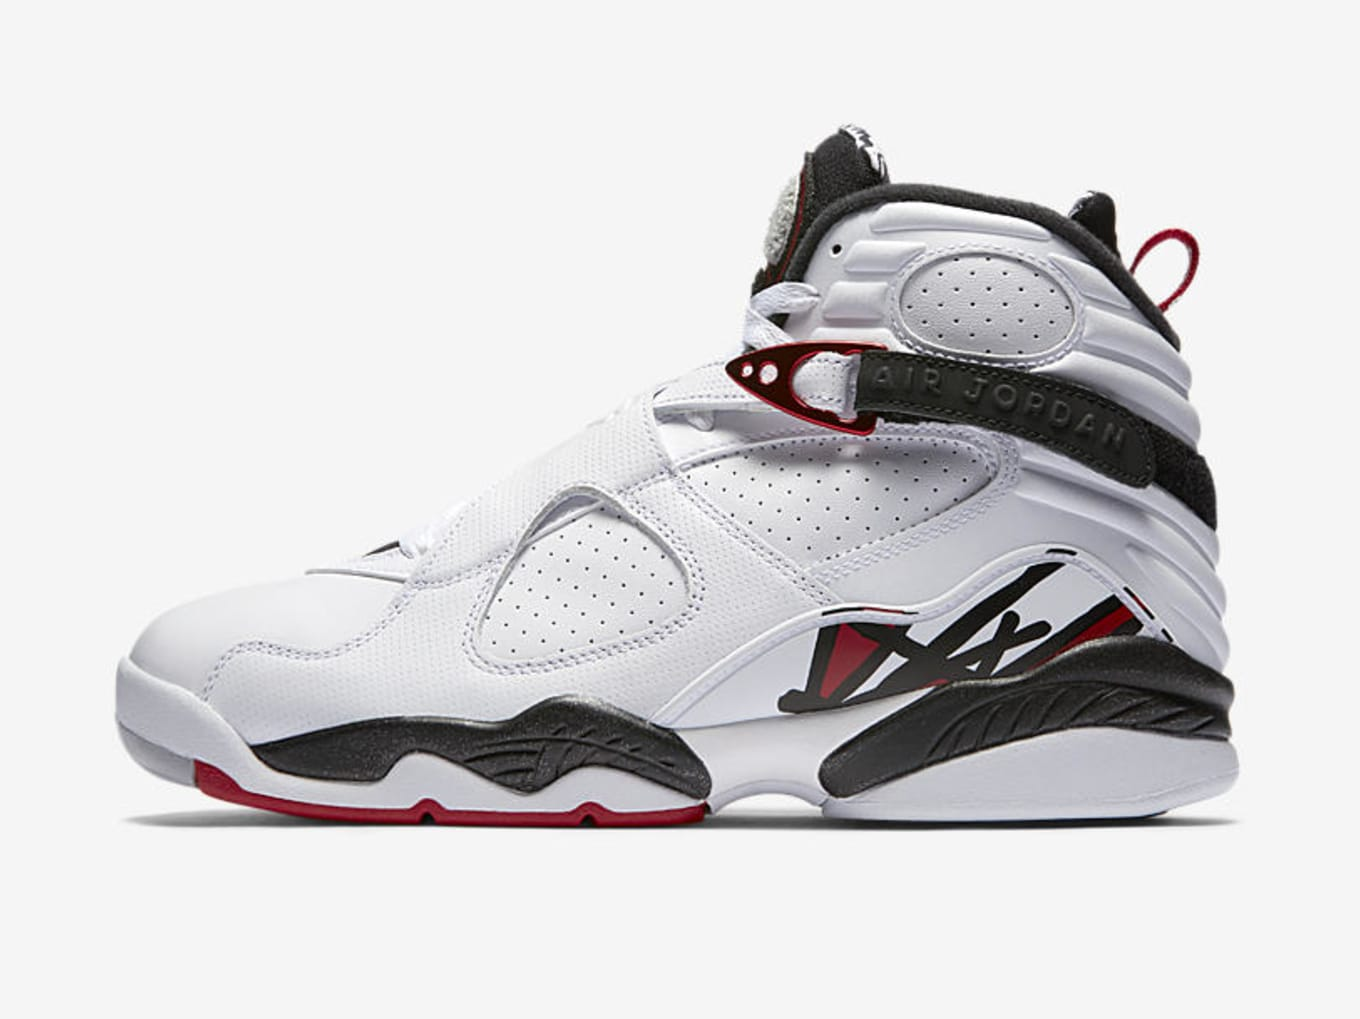 separation shoes c2353 202fa Air Jordan 8 Retro